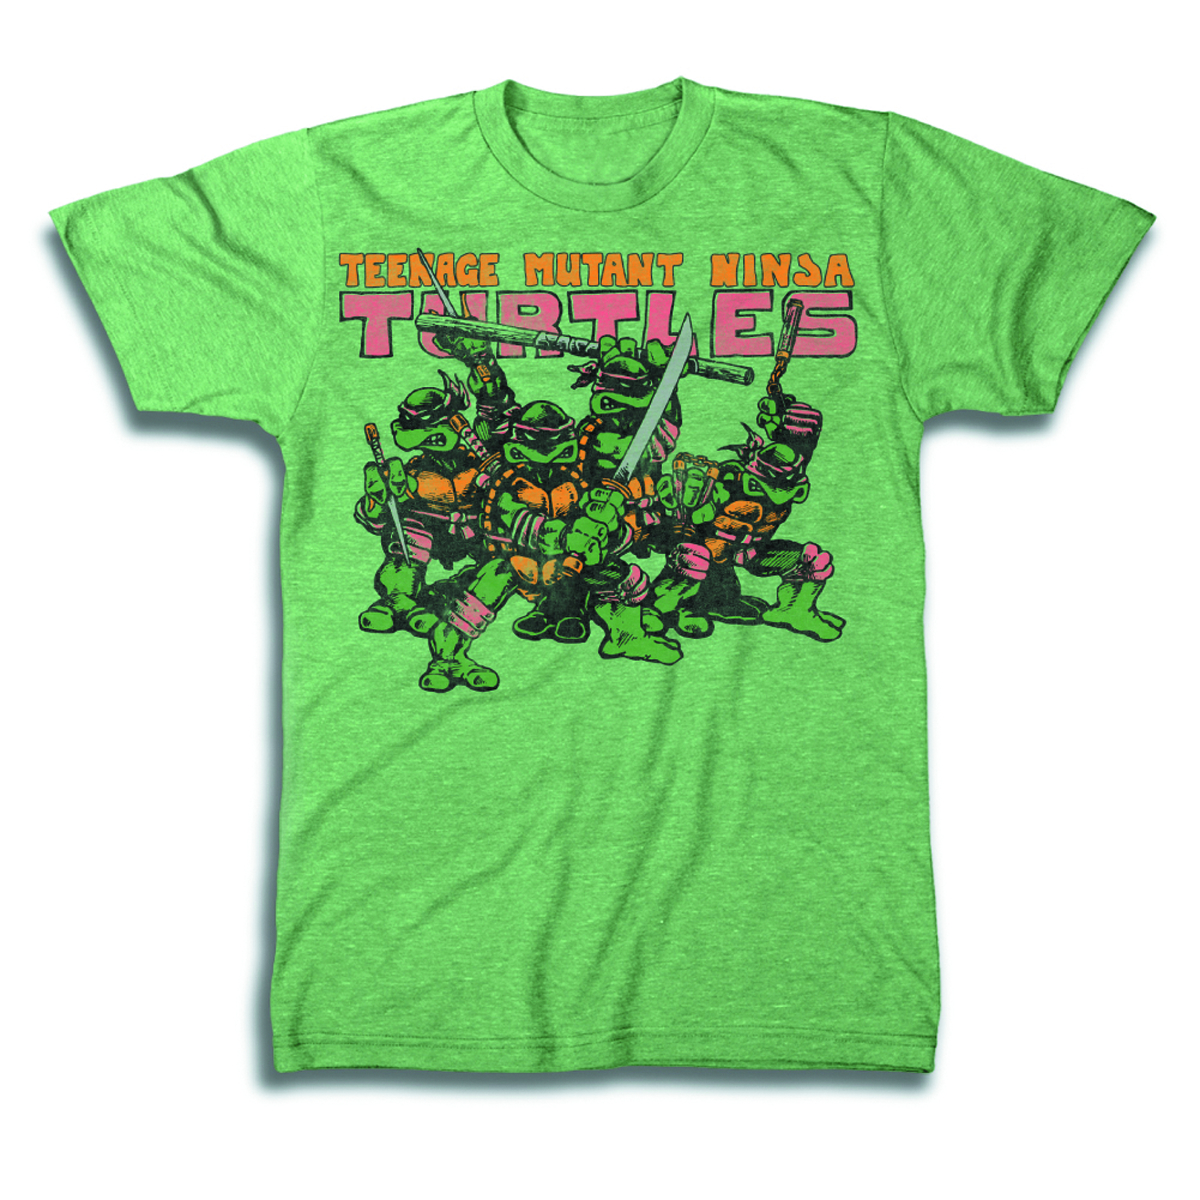 TMNT GROUP LOGO PX GREEN T/S LG